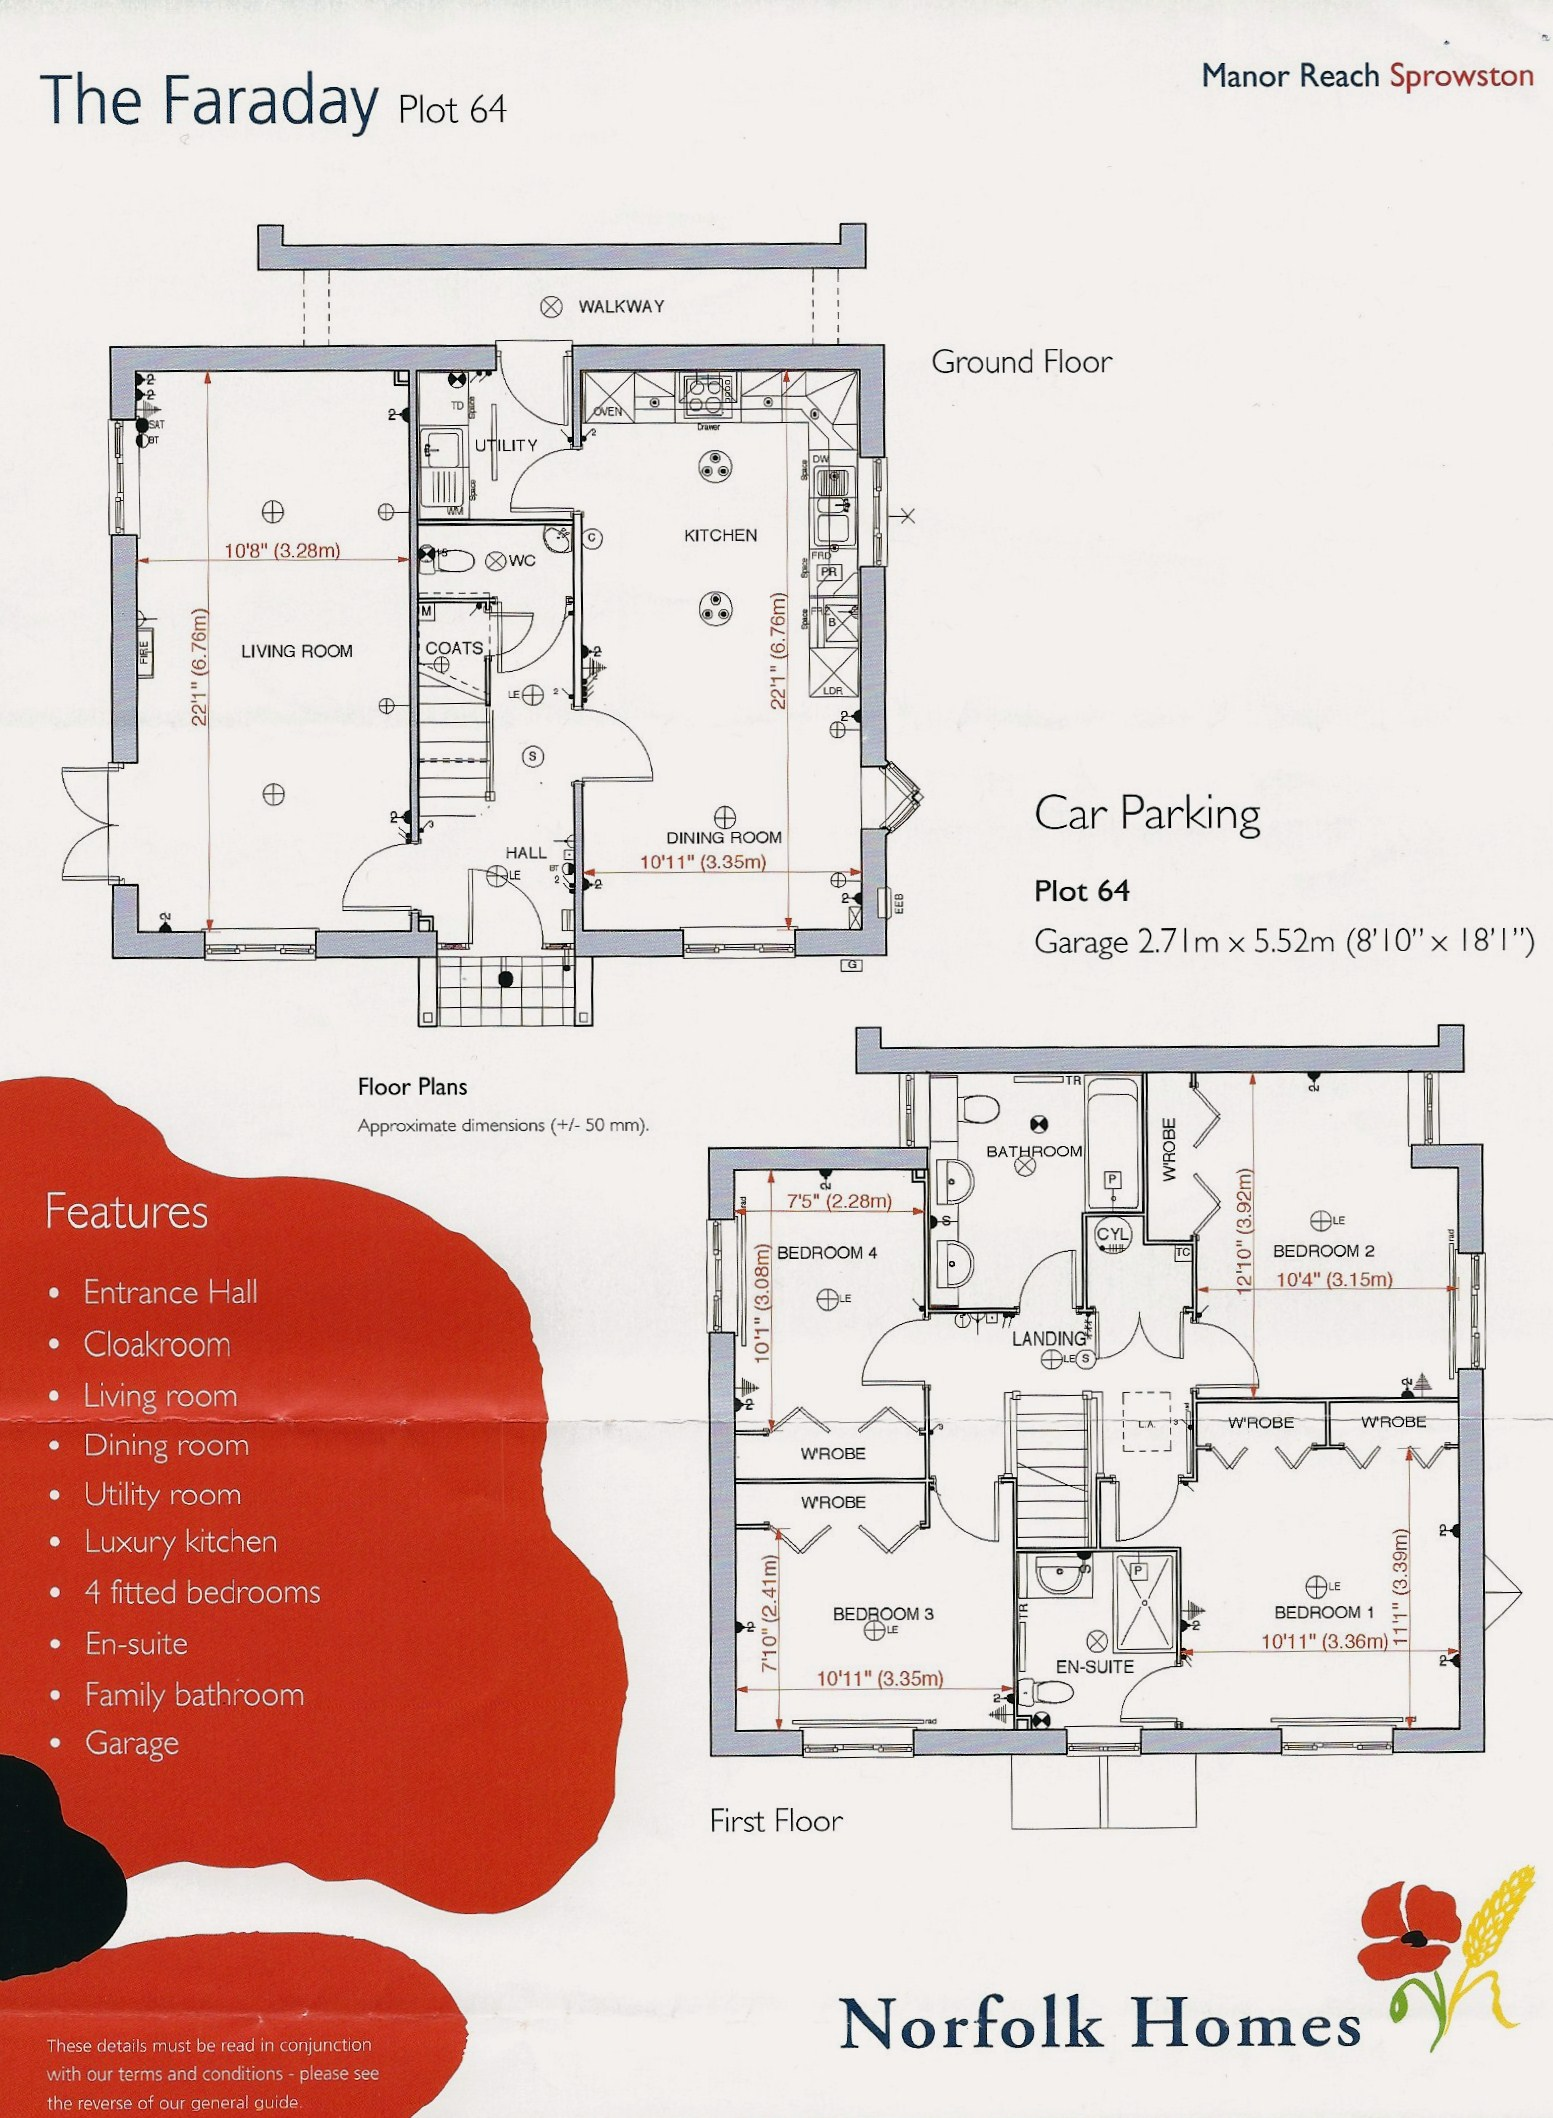 House to let in sprowston with underfloor heating the online letting